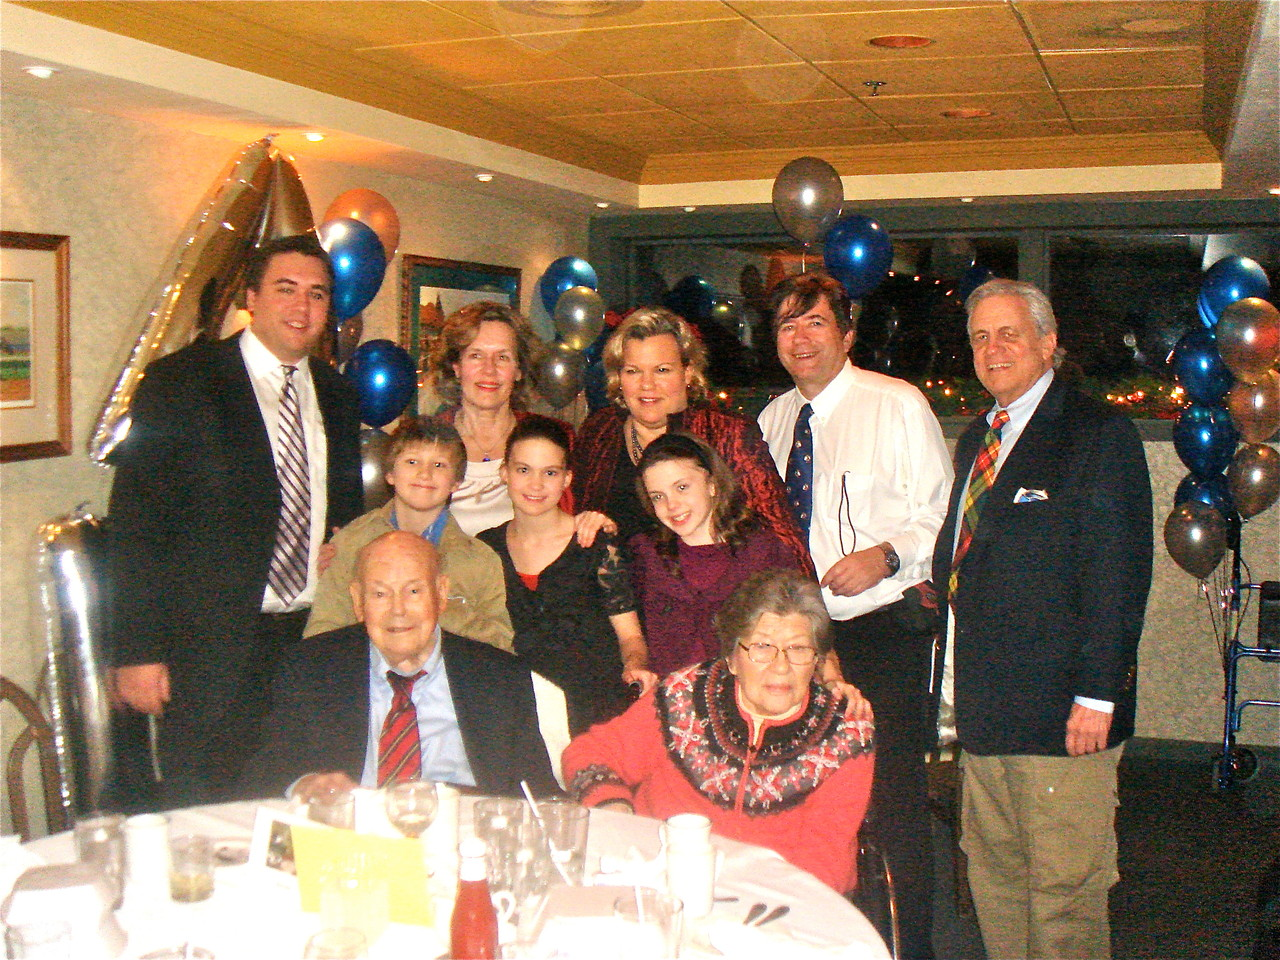 Back: Greg, Lorraine, Celeste, John, Stuart; middle: Jack, Ellie, Kate; front: Birthday Boy Al & Eleanor Gudas